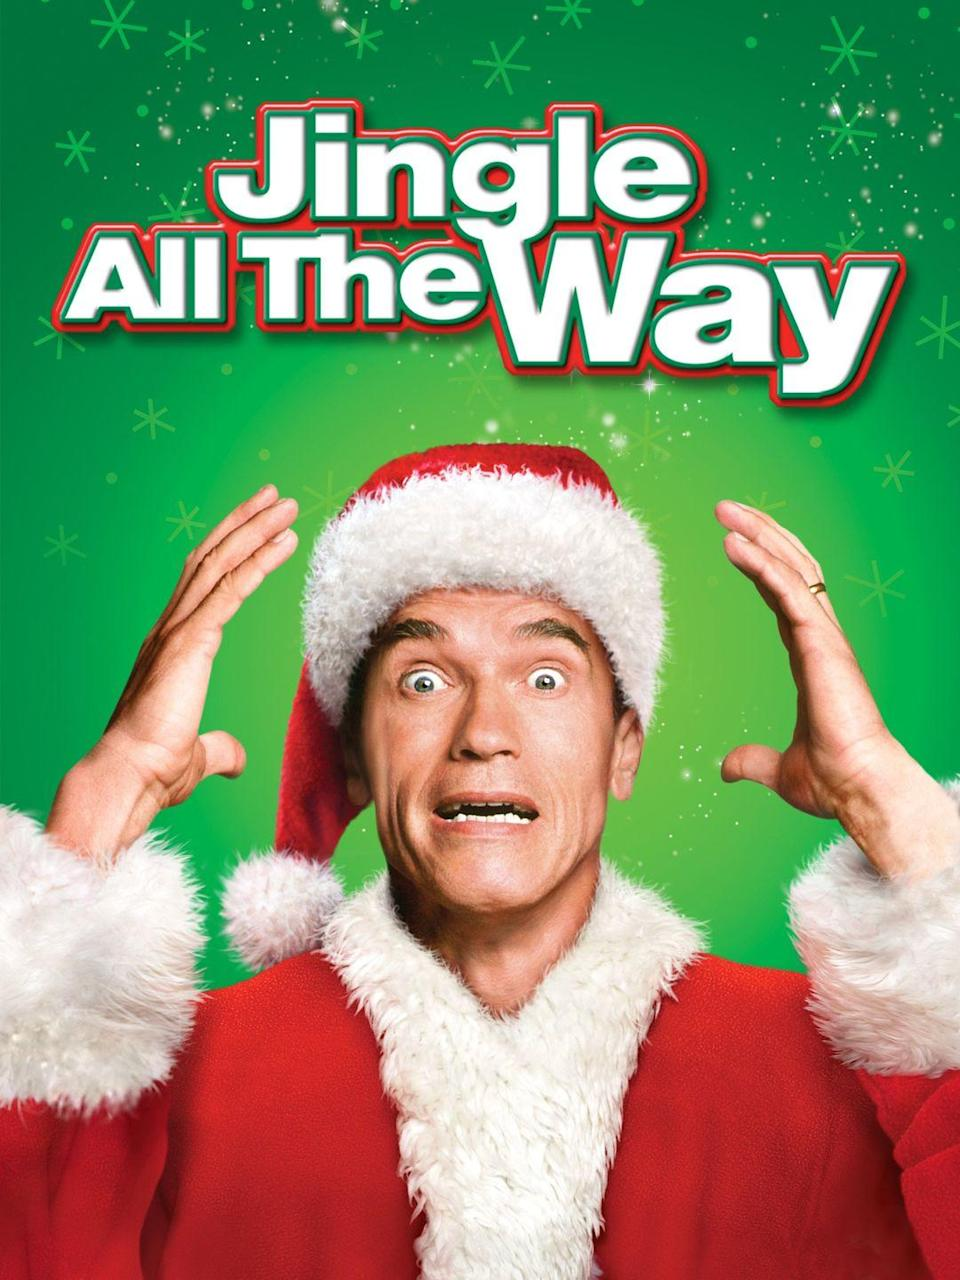 """<p>Starring Arnold Schwarzenegger and Sinbad as dads competing to get their sons the most popular Christmas toy of the year, this 1996 movie is as silly — and fun — as it sounds.</p><p><a class=""""link rapid-noclick-resp"""" href=""""https://www.amazon.com/Jingle-All-Way-Arnold-Schwarzenegger/dp/B000SW4DQM/?tag=syn-yahoo-20&ascsubtag=%5Bartid%7C10055.g.1315%5Bsrc%7Cyahoo-us"""" rel=""""nofollow noopener"""" target=""""_blank"""" data-ylk=""""slk:WATCH NOW"""">WATCH NOW</a></p>"""